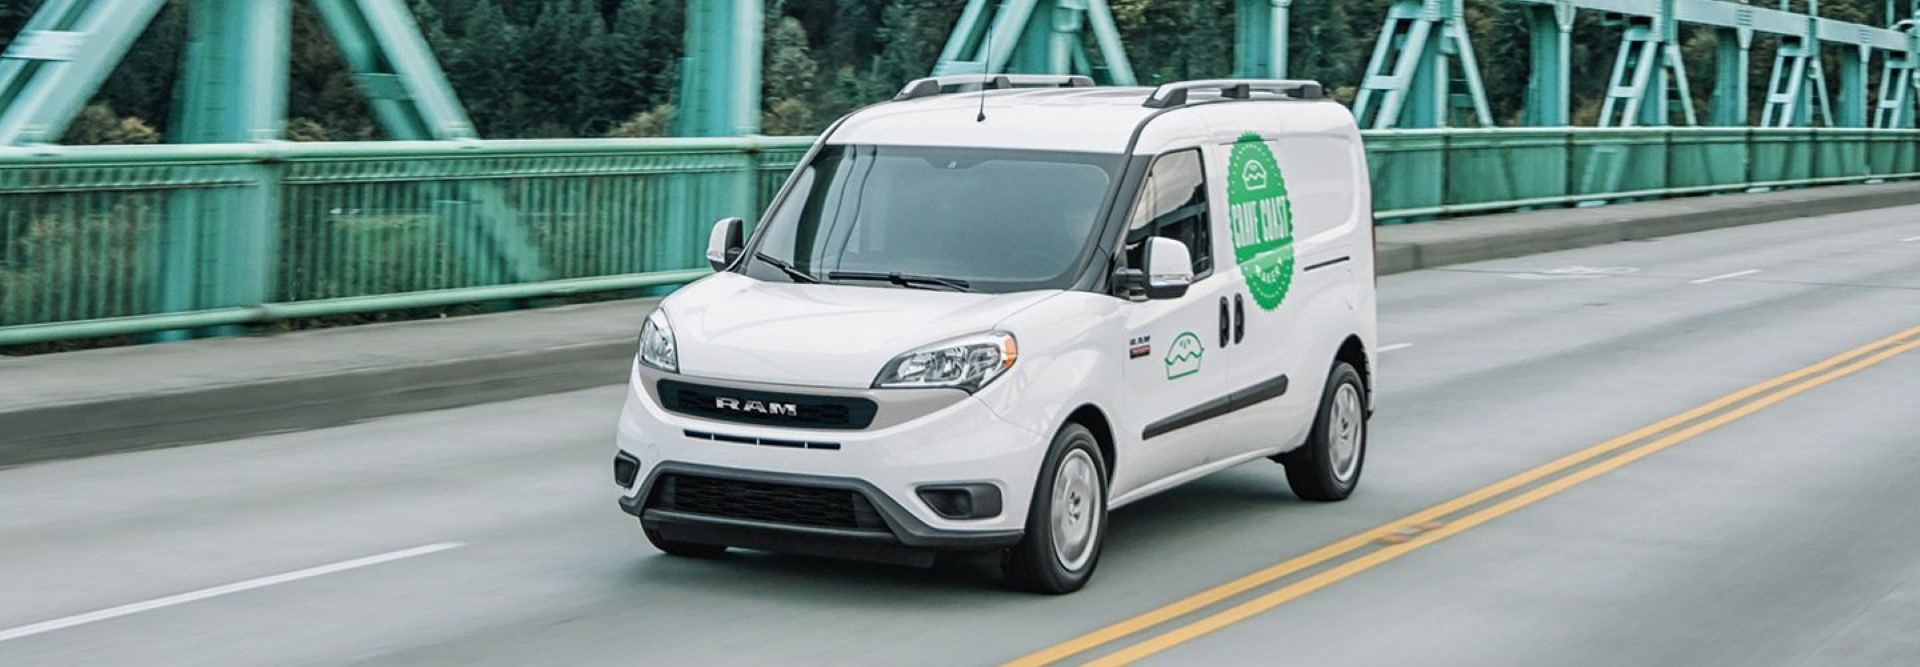 2020 RAM ProMaster City Lease Deals